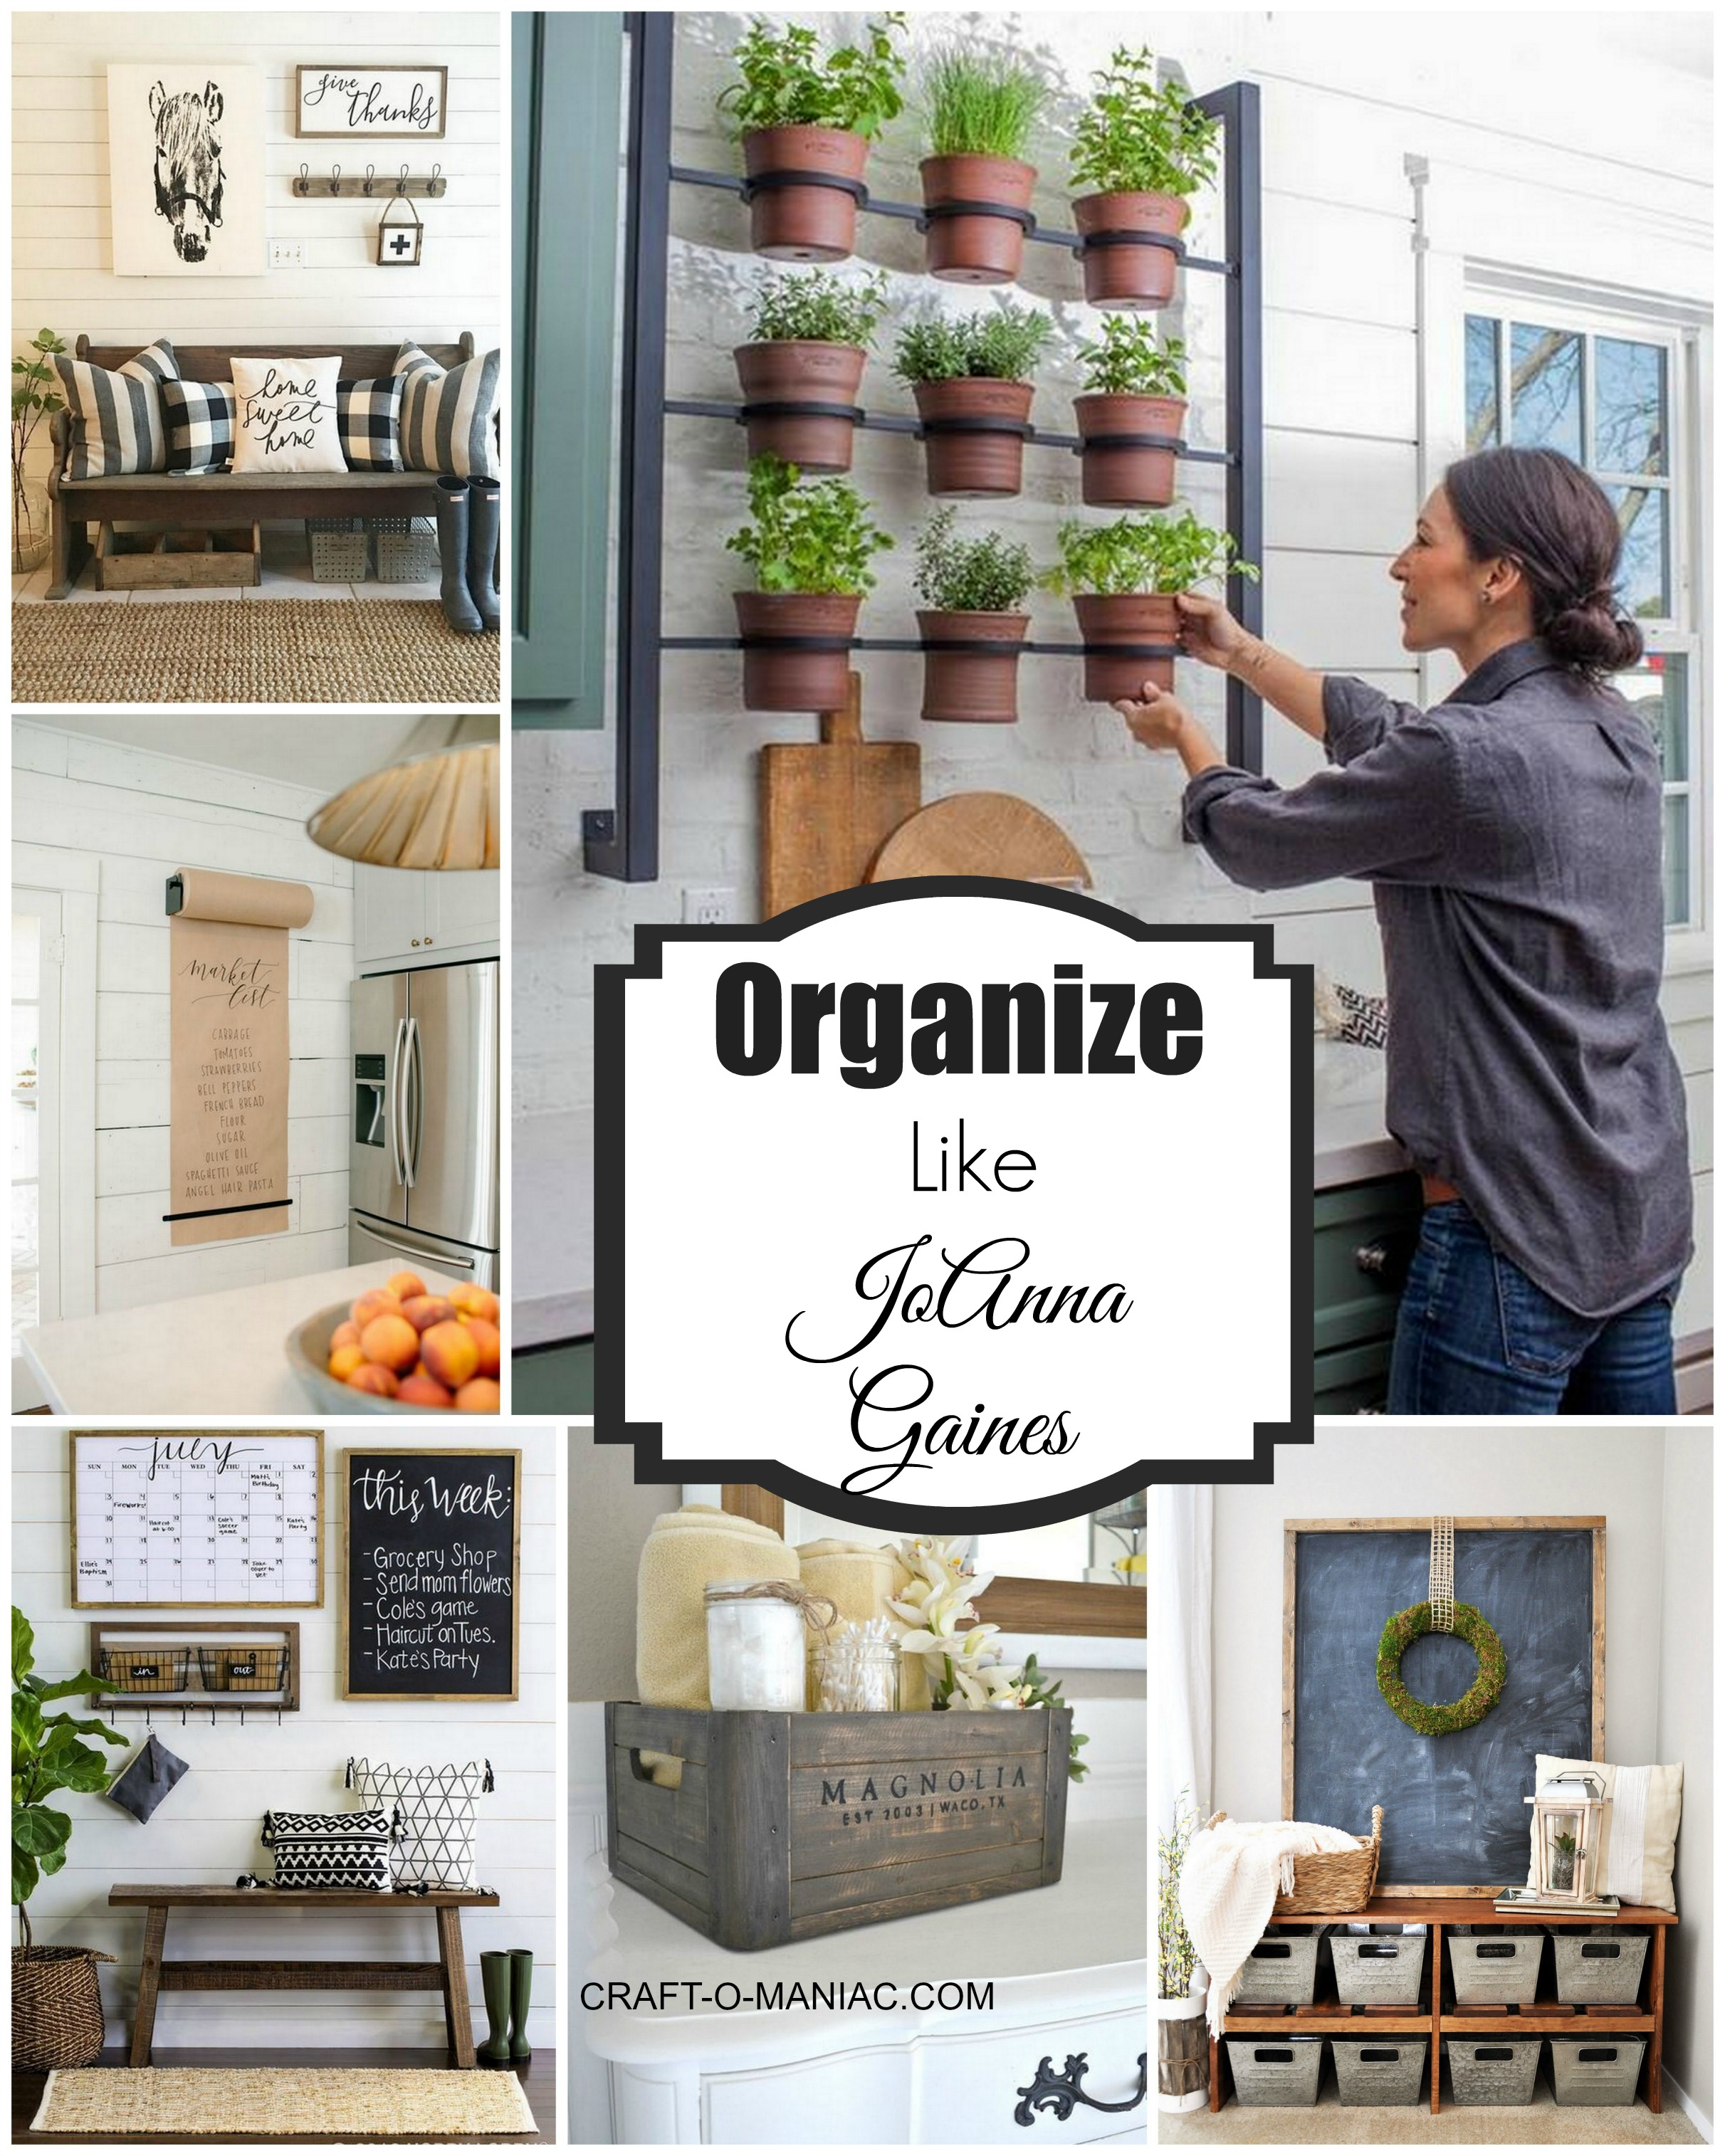 Joanna Gaines Farmhouse Mantel Organize Your Home Like Joanna Gaines Craft O Maniac